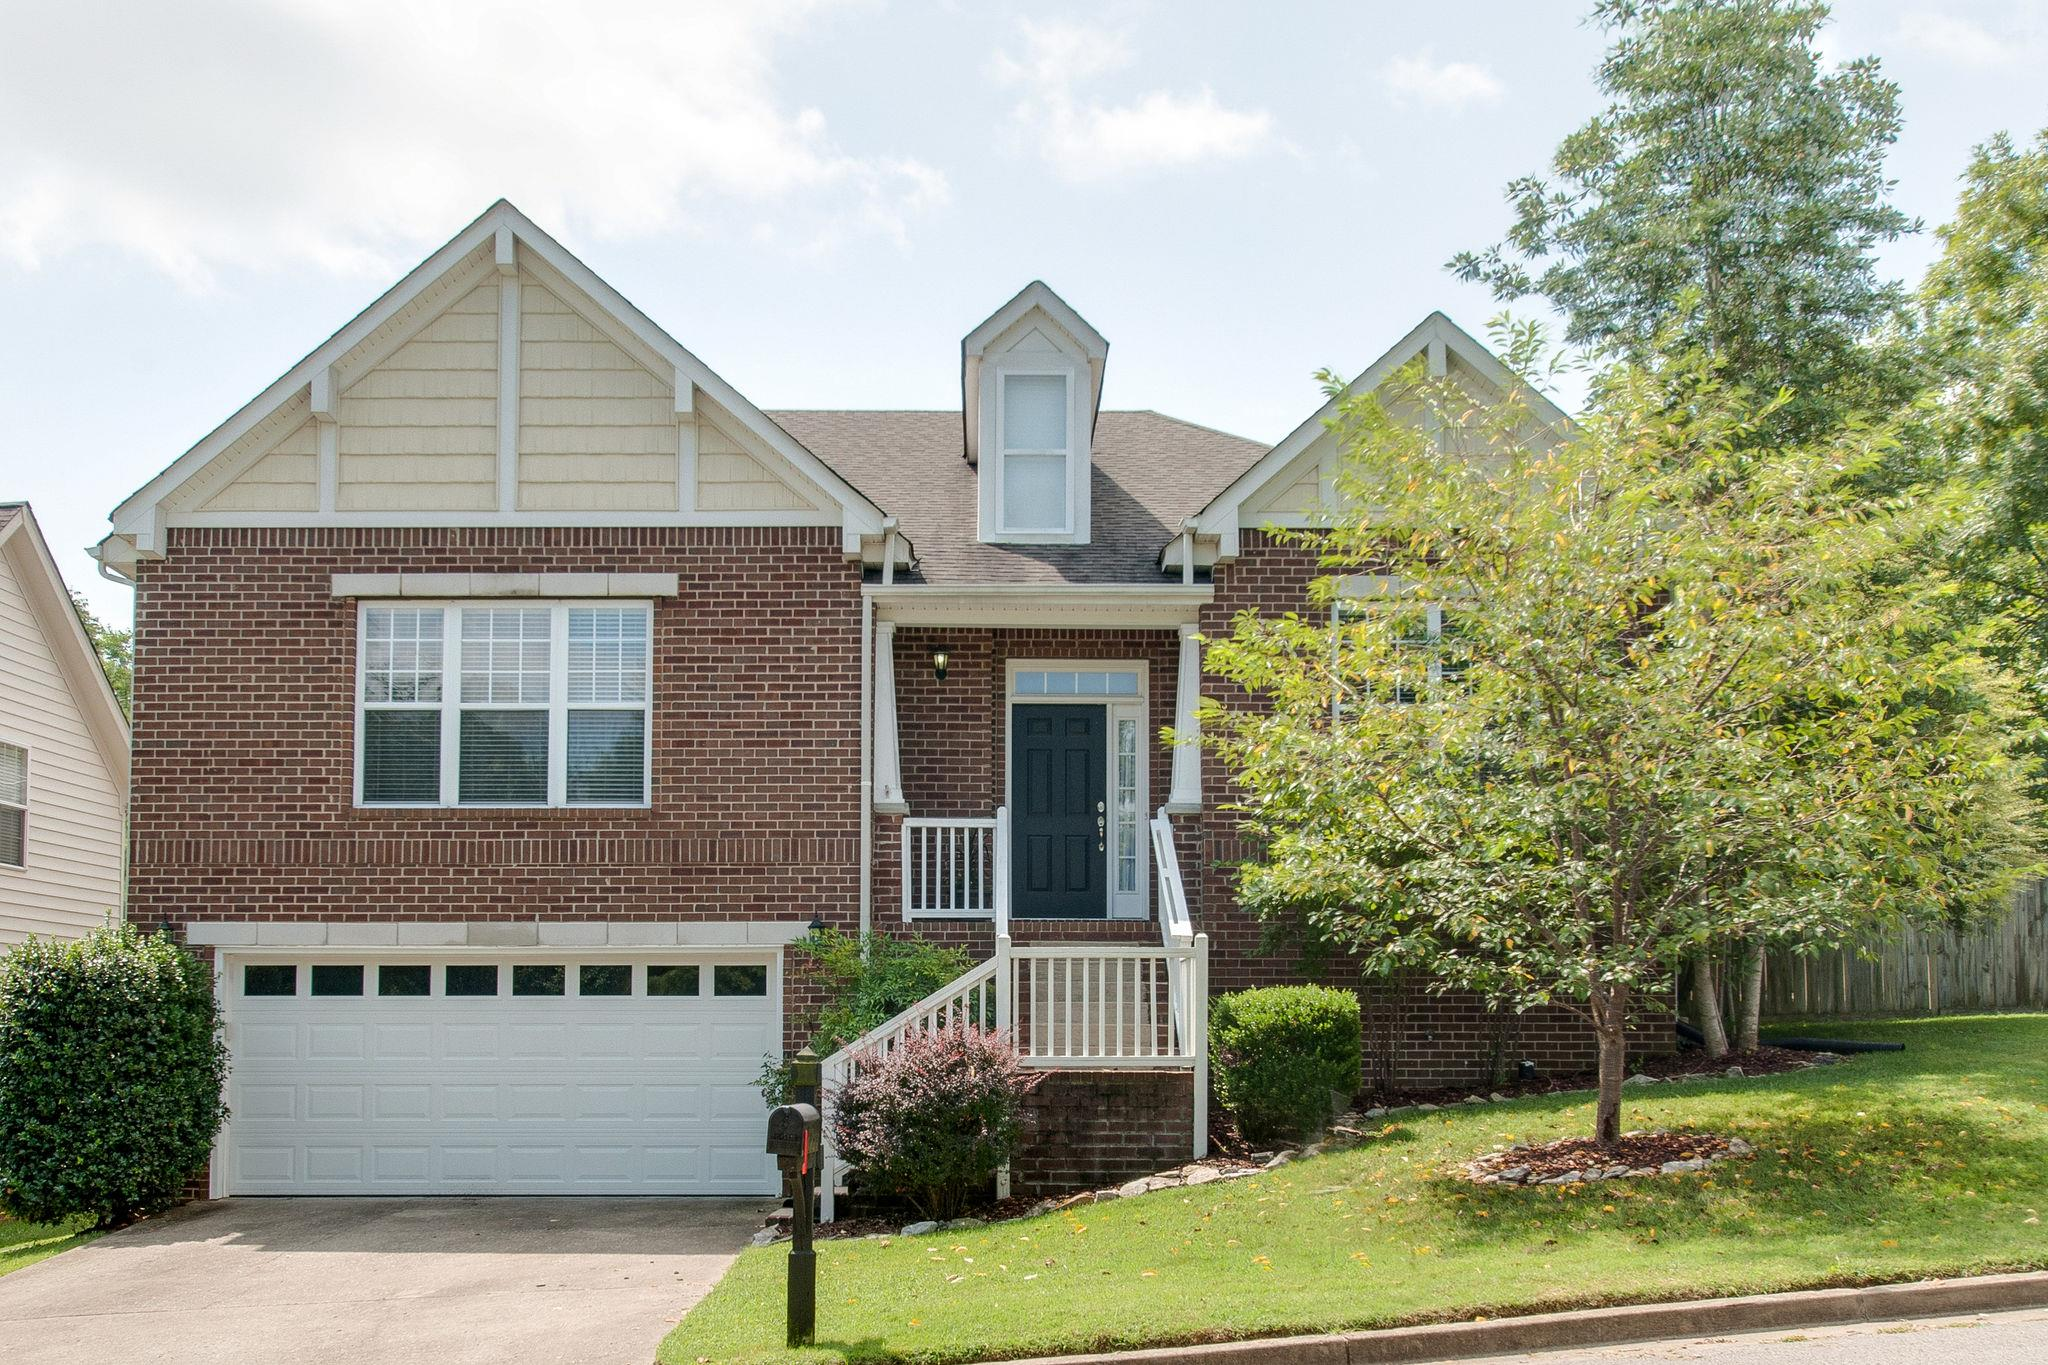 6612 Valleypark Dr, Bellevue in Davidson County County, TN 37221 Home for Sale